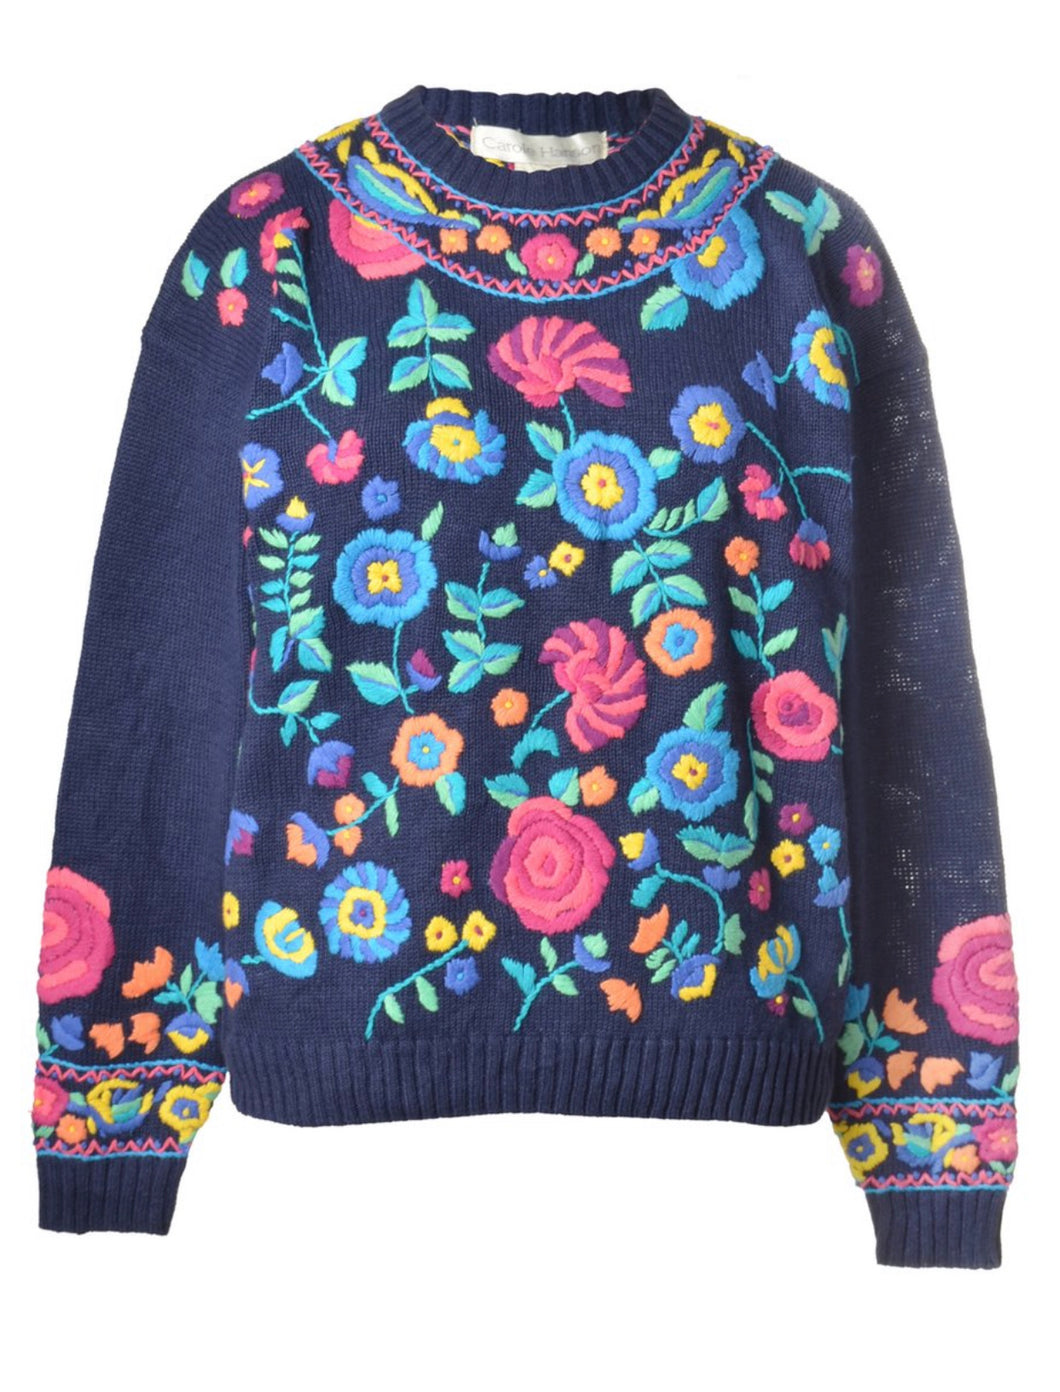 The Bianca floral Knit Jumper